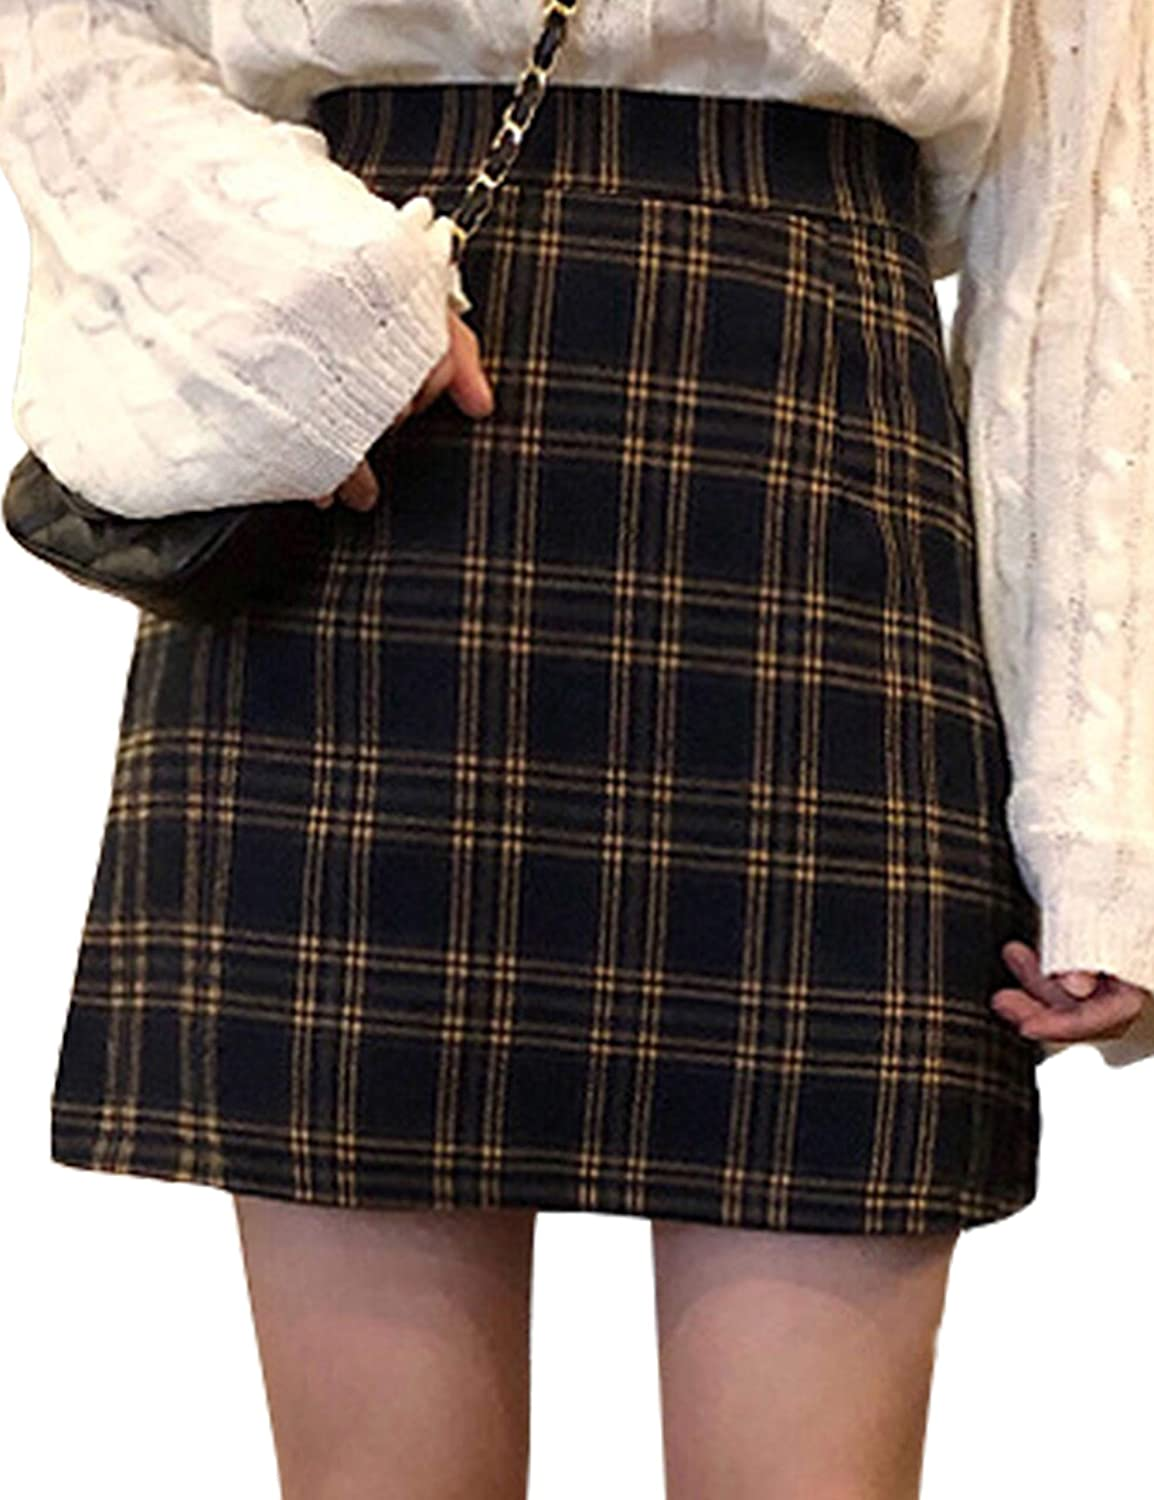 Himosyber Women's Casual High Wasit Zip up Plaid A-Line Skater Mini Skirt